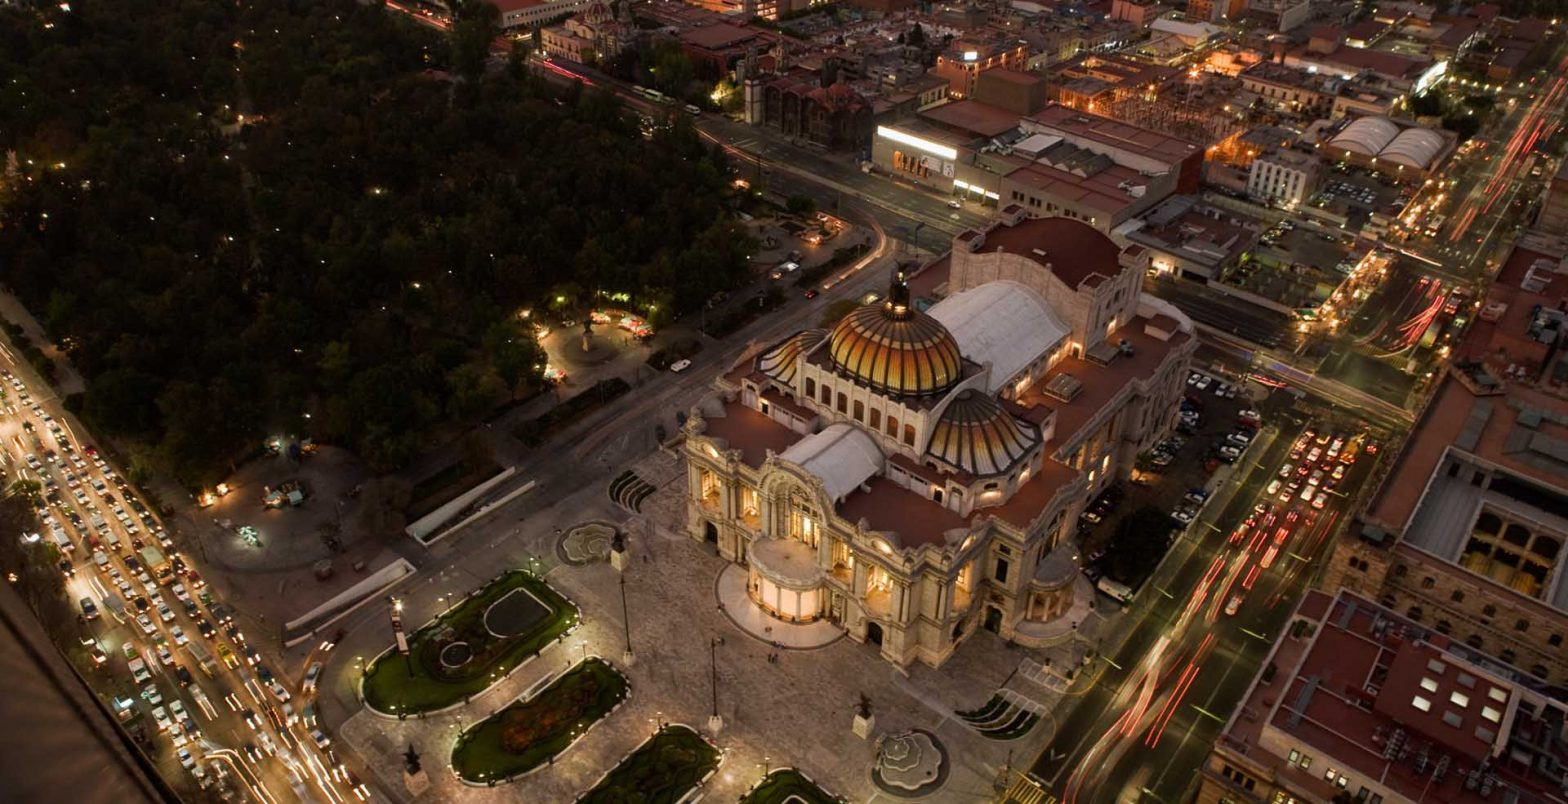 The mighty Palace of Bellas Artes